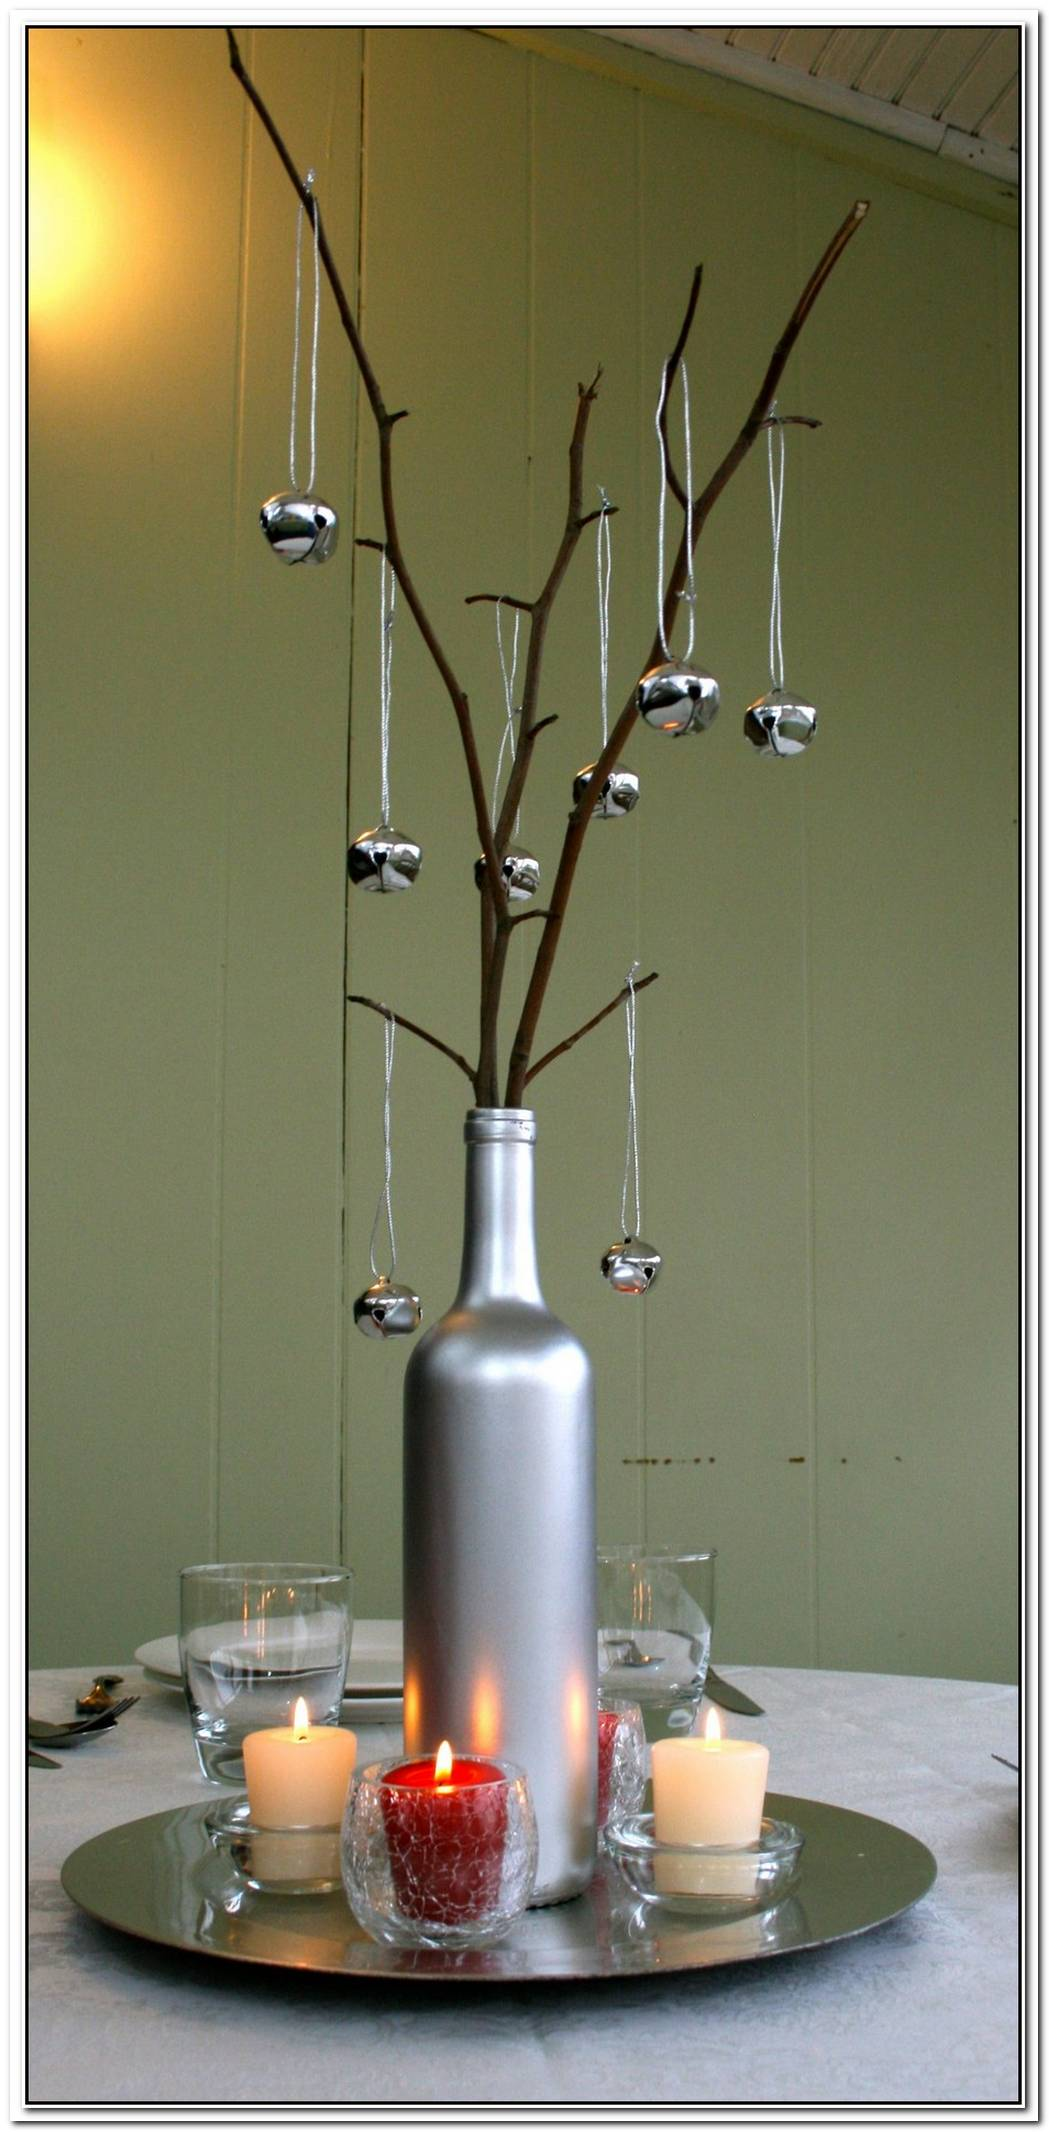 Prepare Your Home For A New Season With A Branch Candle Centerpiece